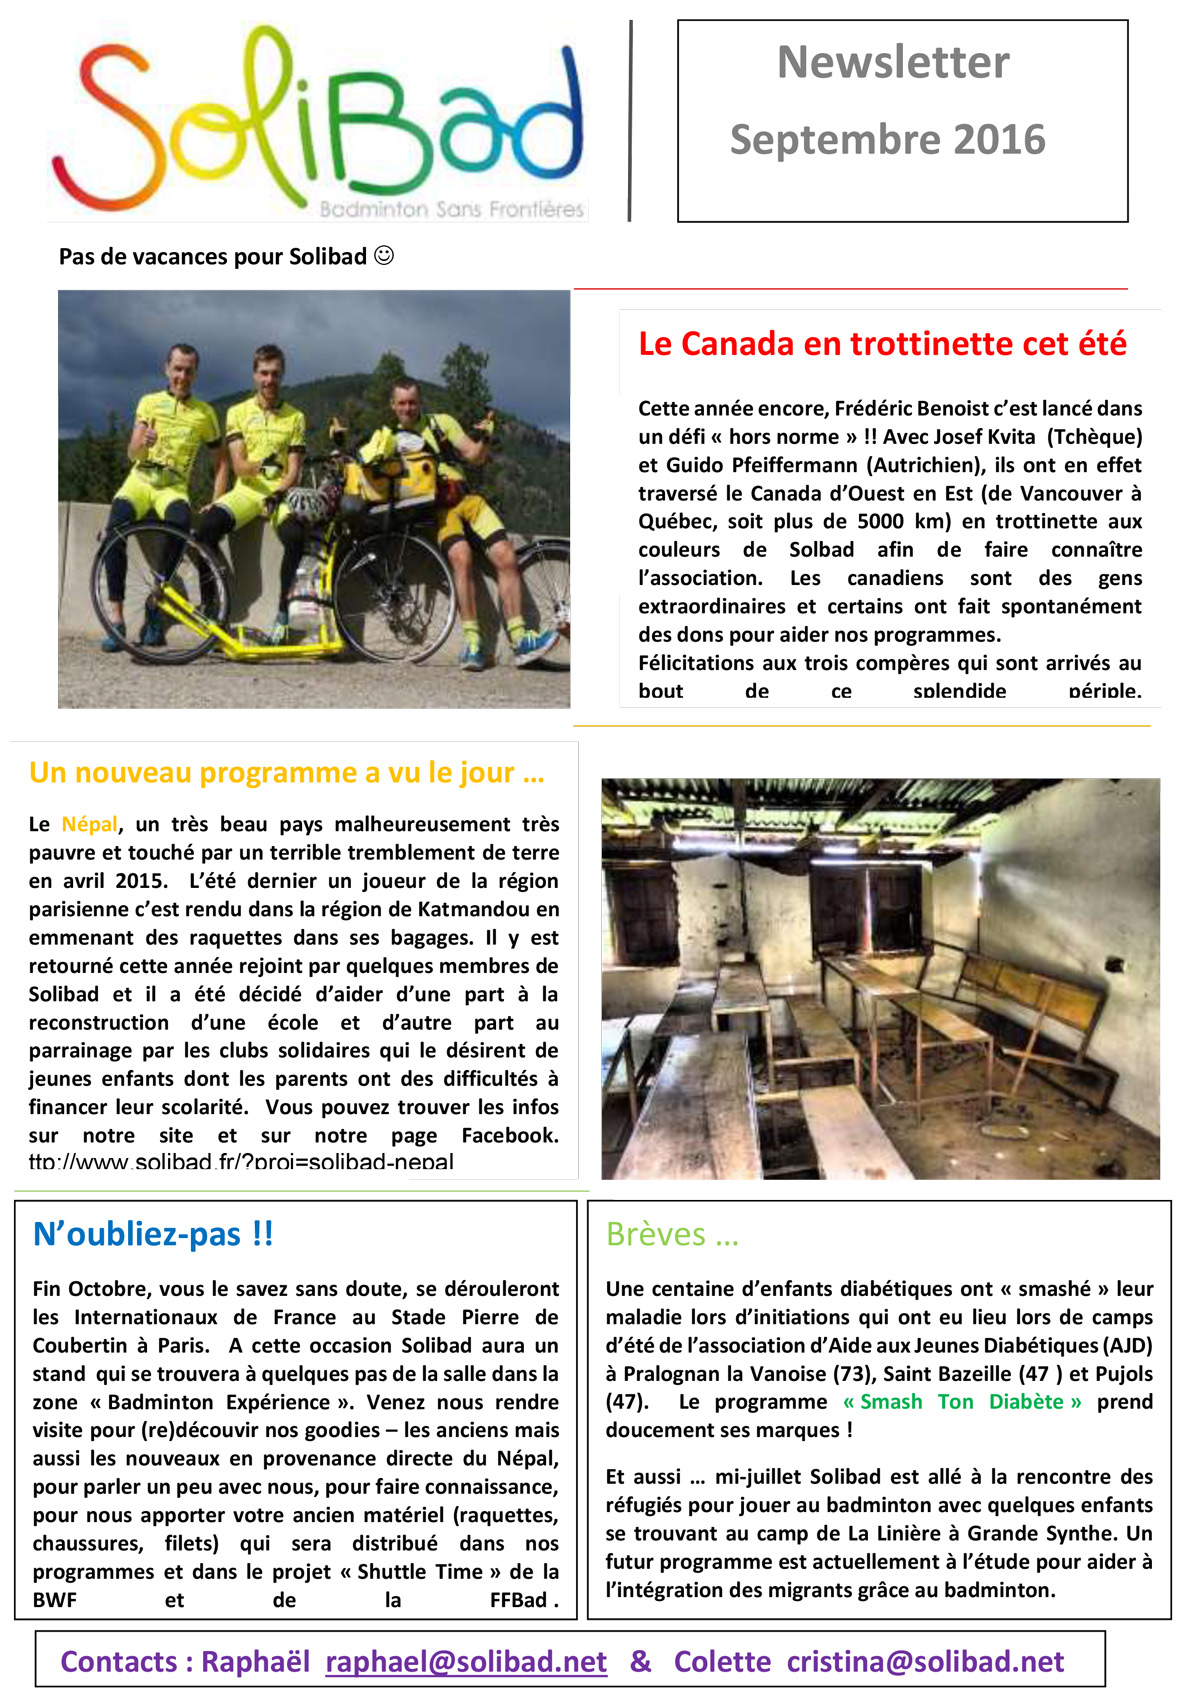 Newsletter septembre 2016 CB 1